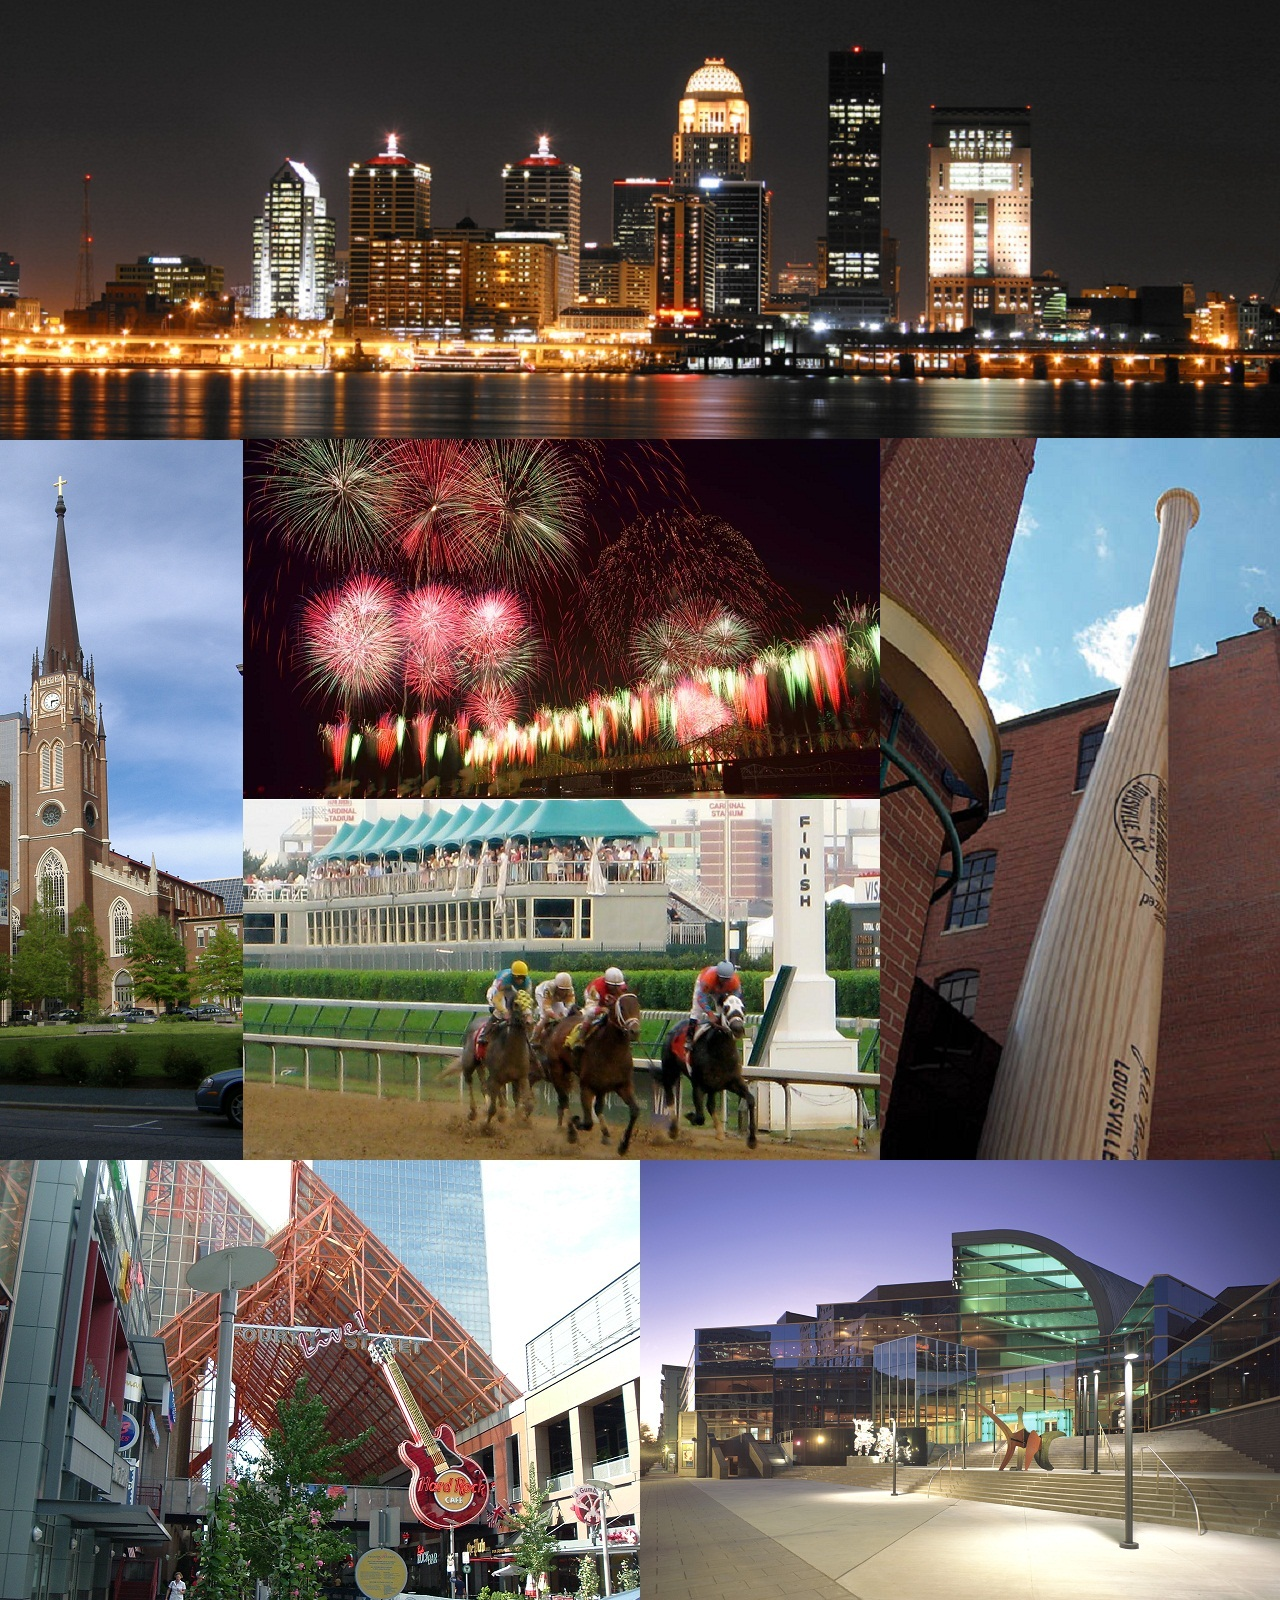 Louisville Montage. A Wikimedia Commons freely licensed montage.